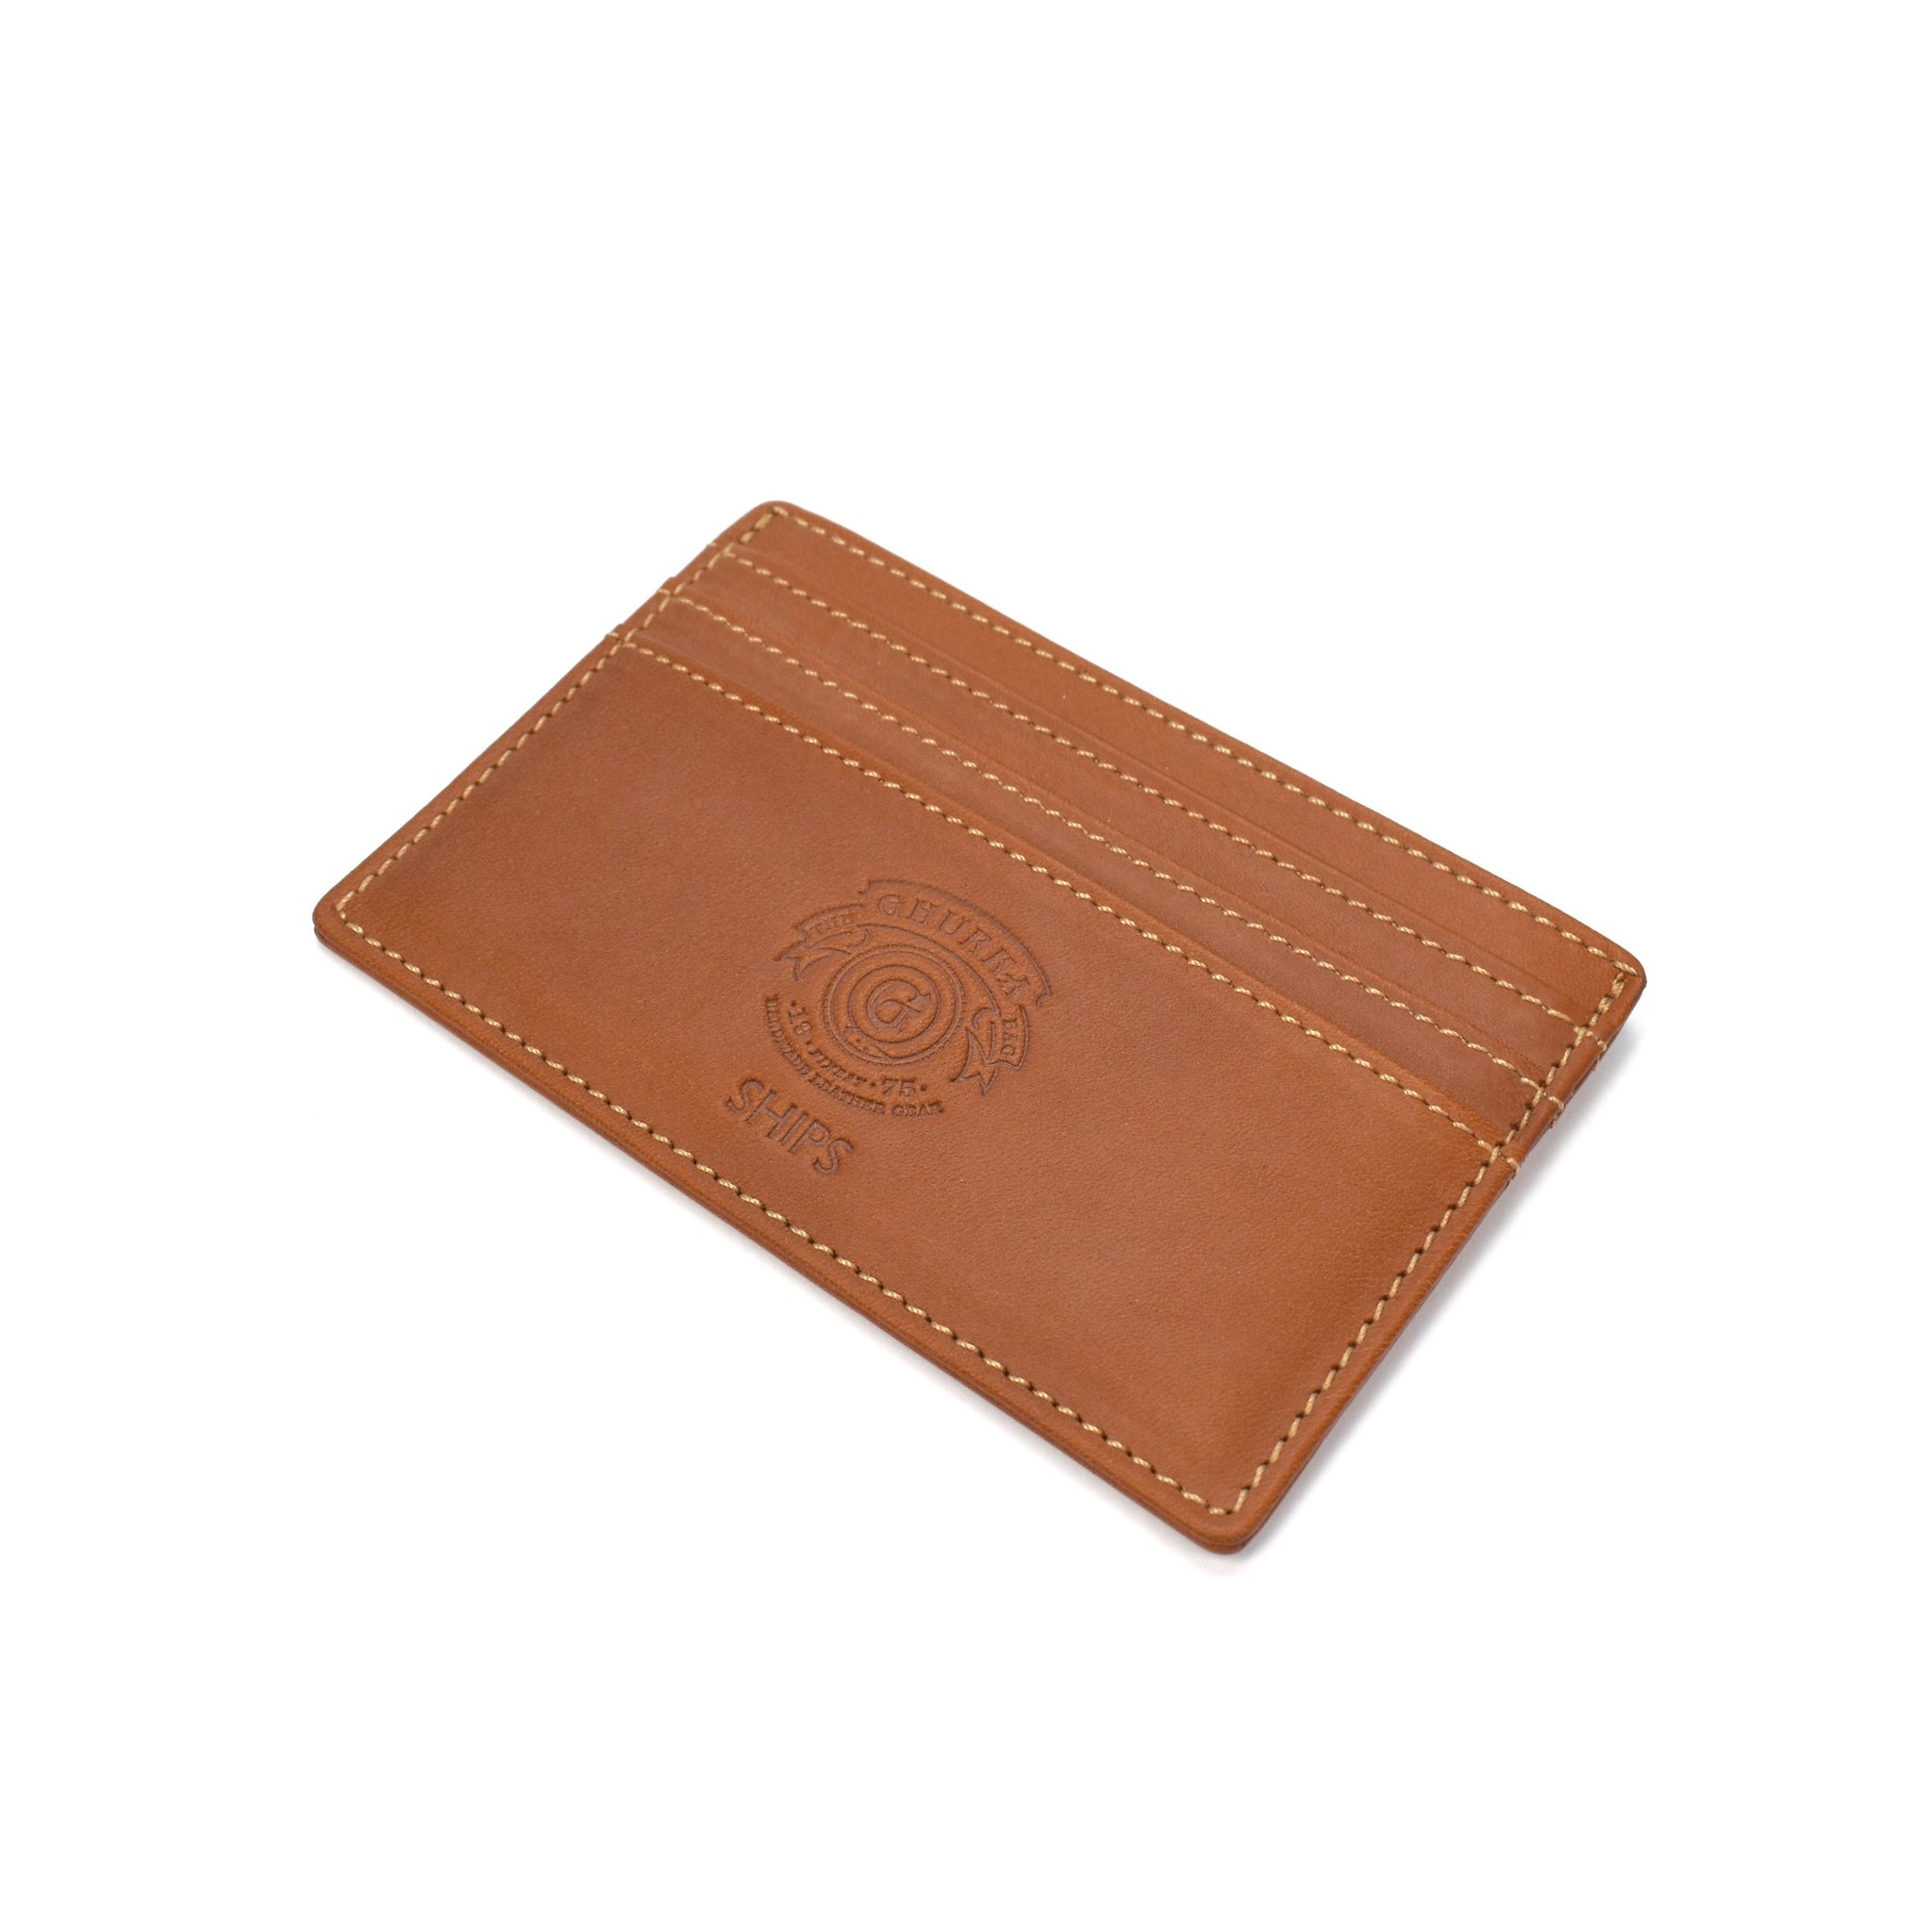 Ghurka - Chestnut Leather Card Holder